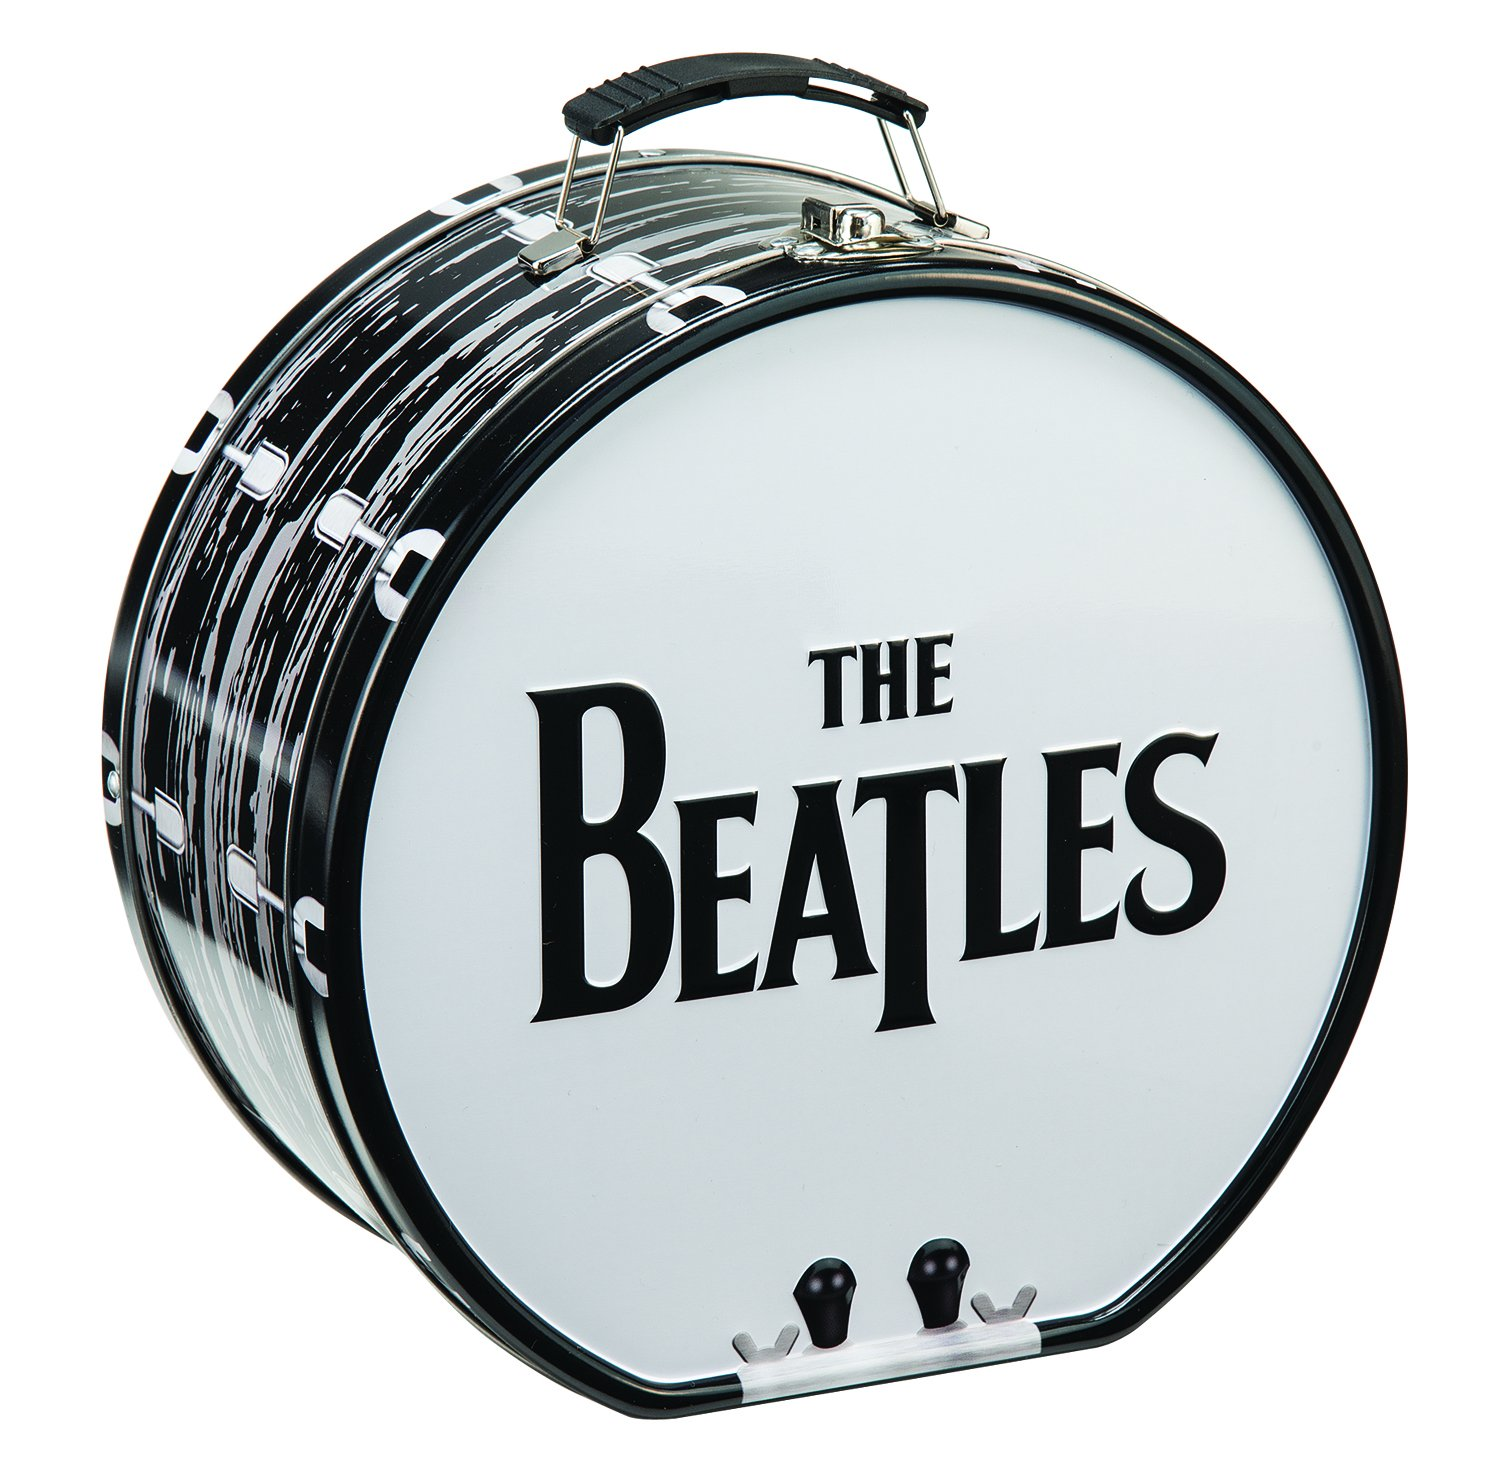 The Beatles bass drum shaped lunch box